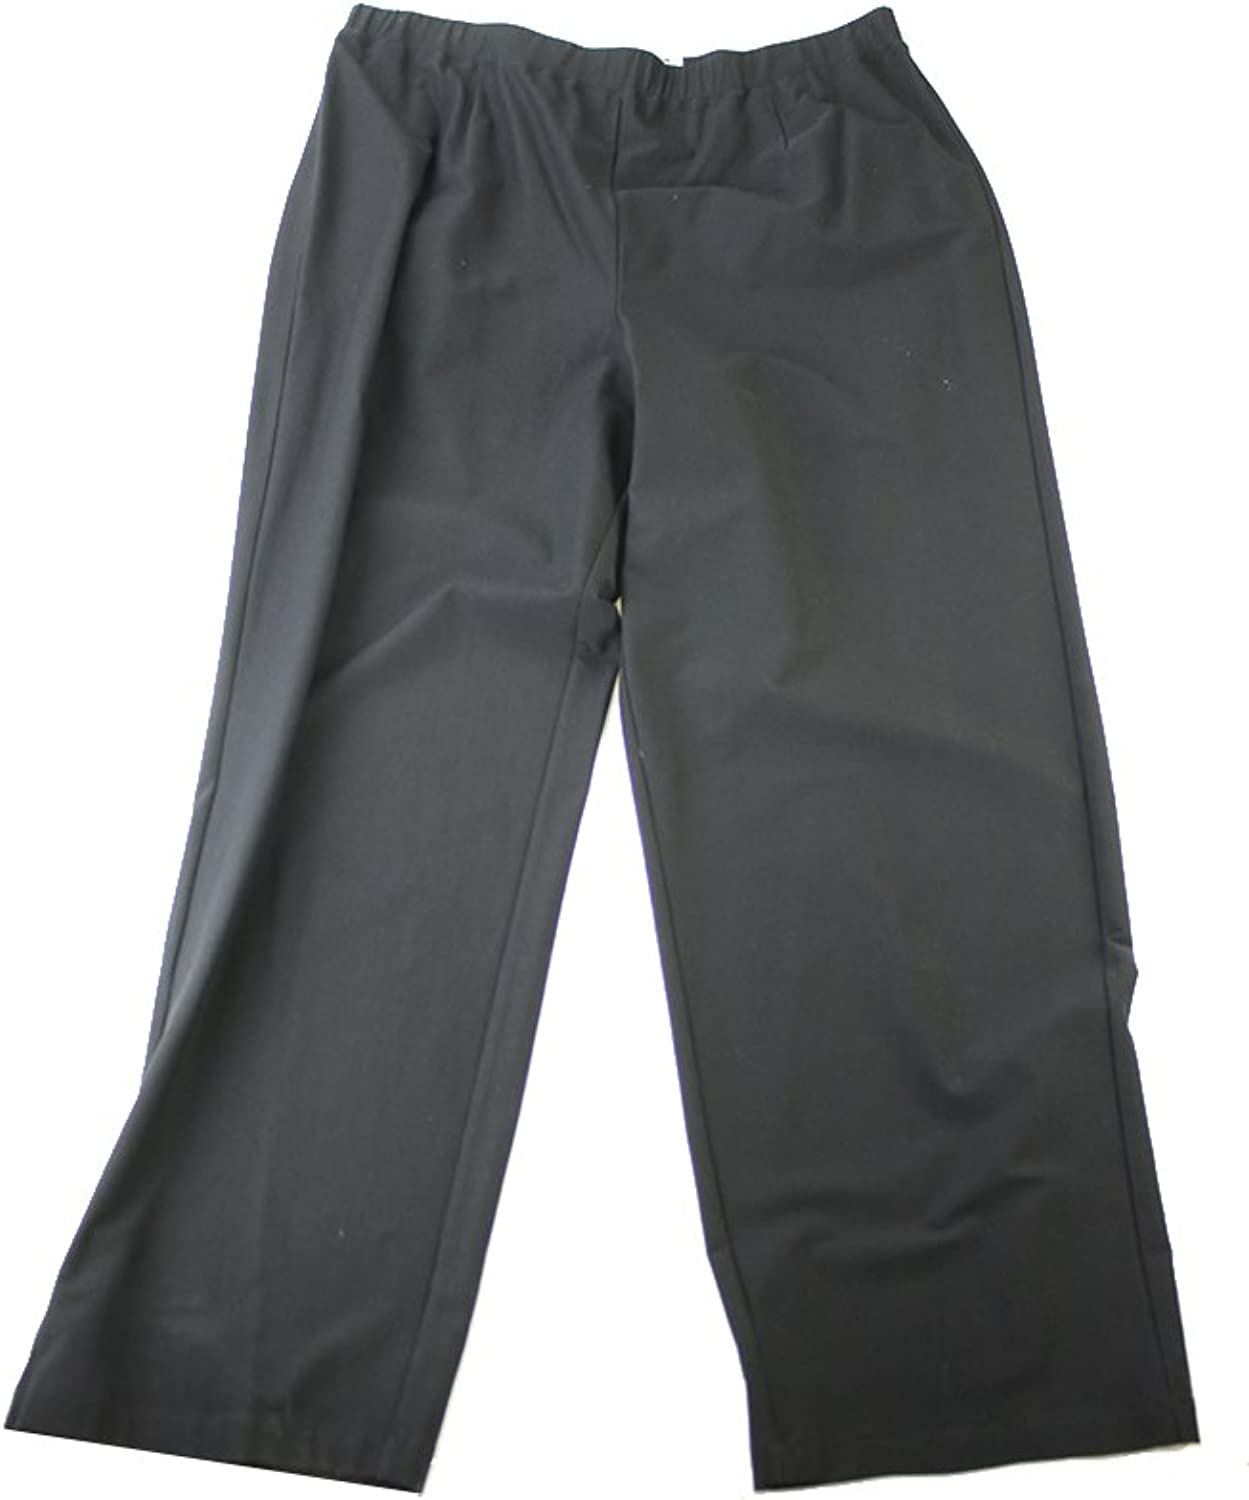 EileenFisher Black Pull On Pants X